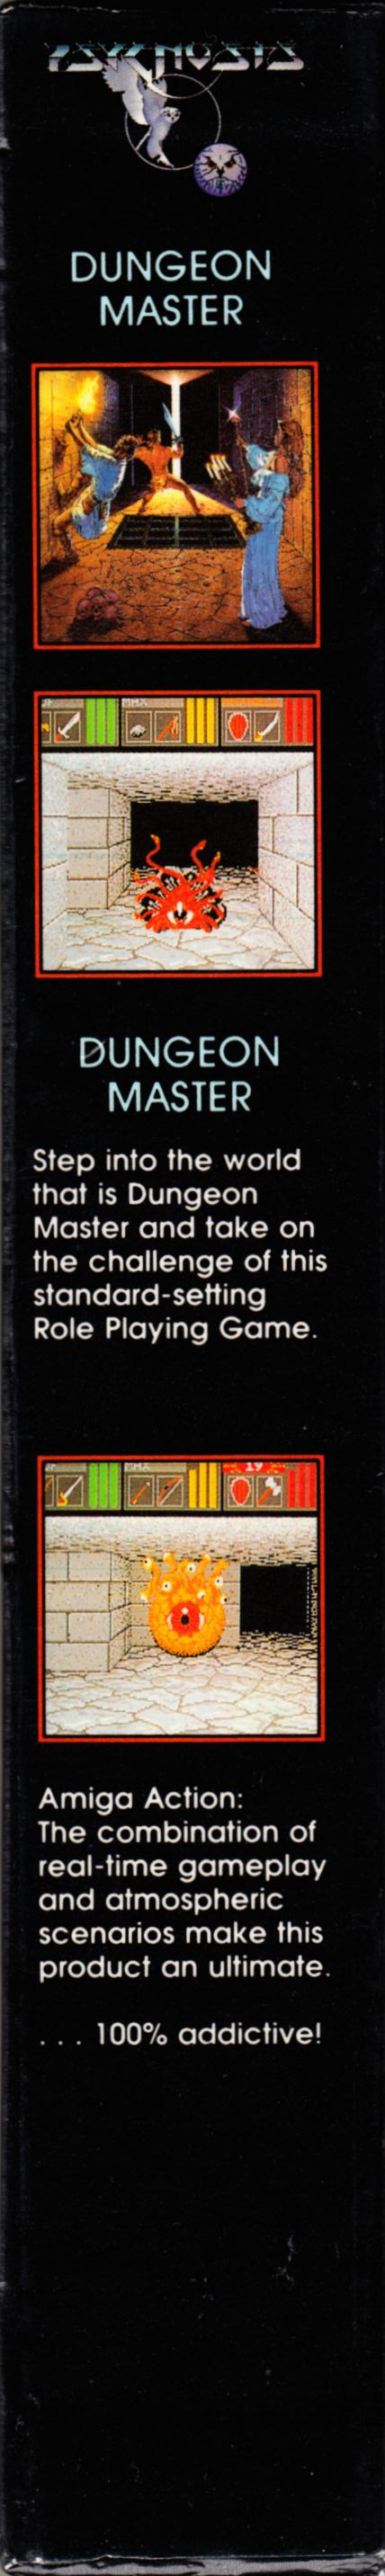 Game - Dungeon Master - DE - PC - Psygnosis - Box - Right - Scan